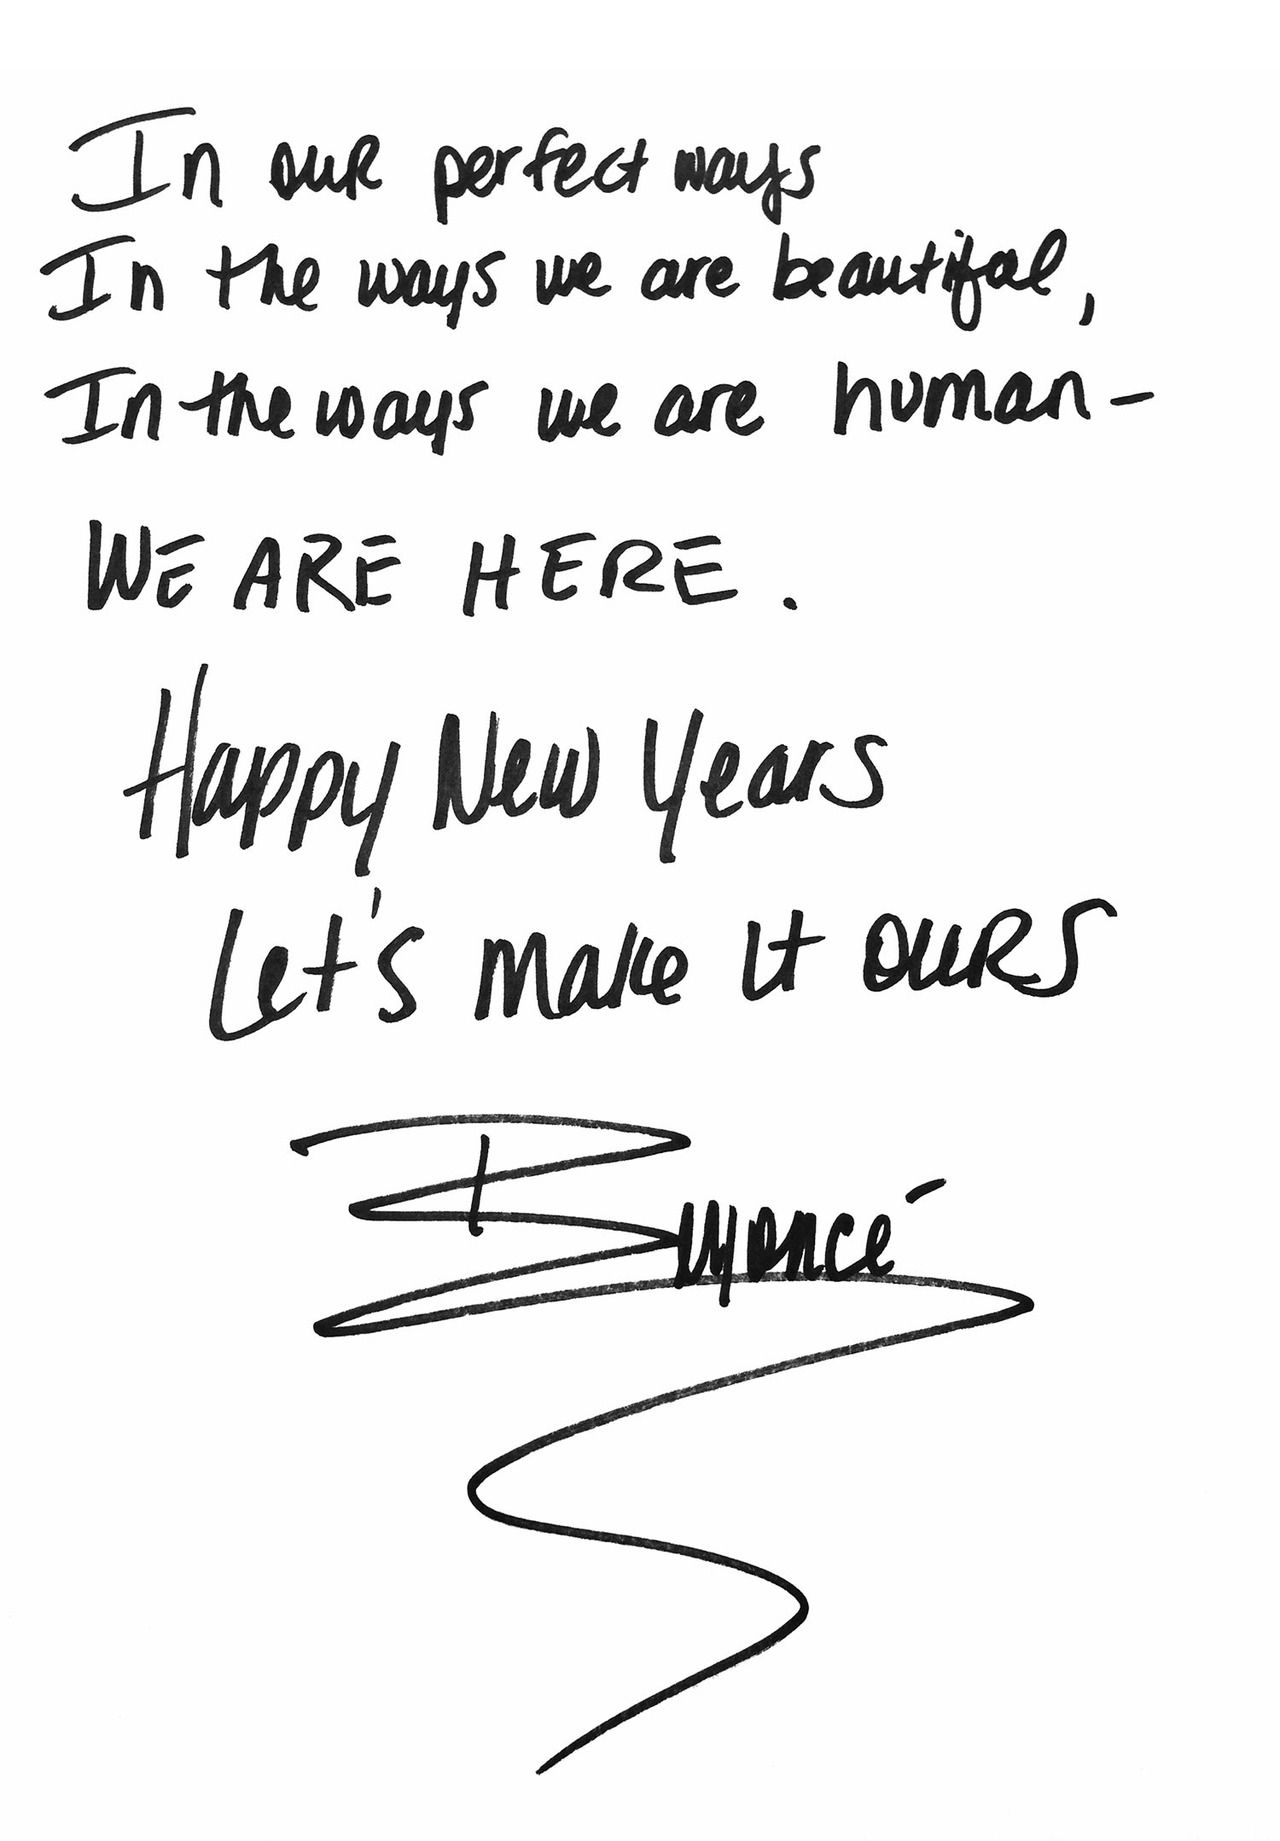 A New Years Letter From Beyonce Corny Quotes Inspirational Words Quotes About New Year